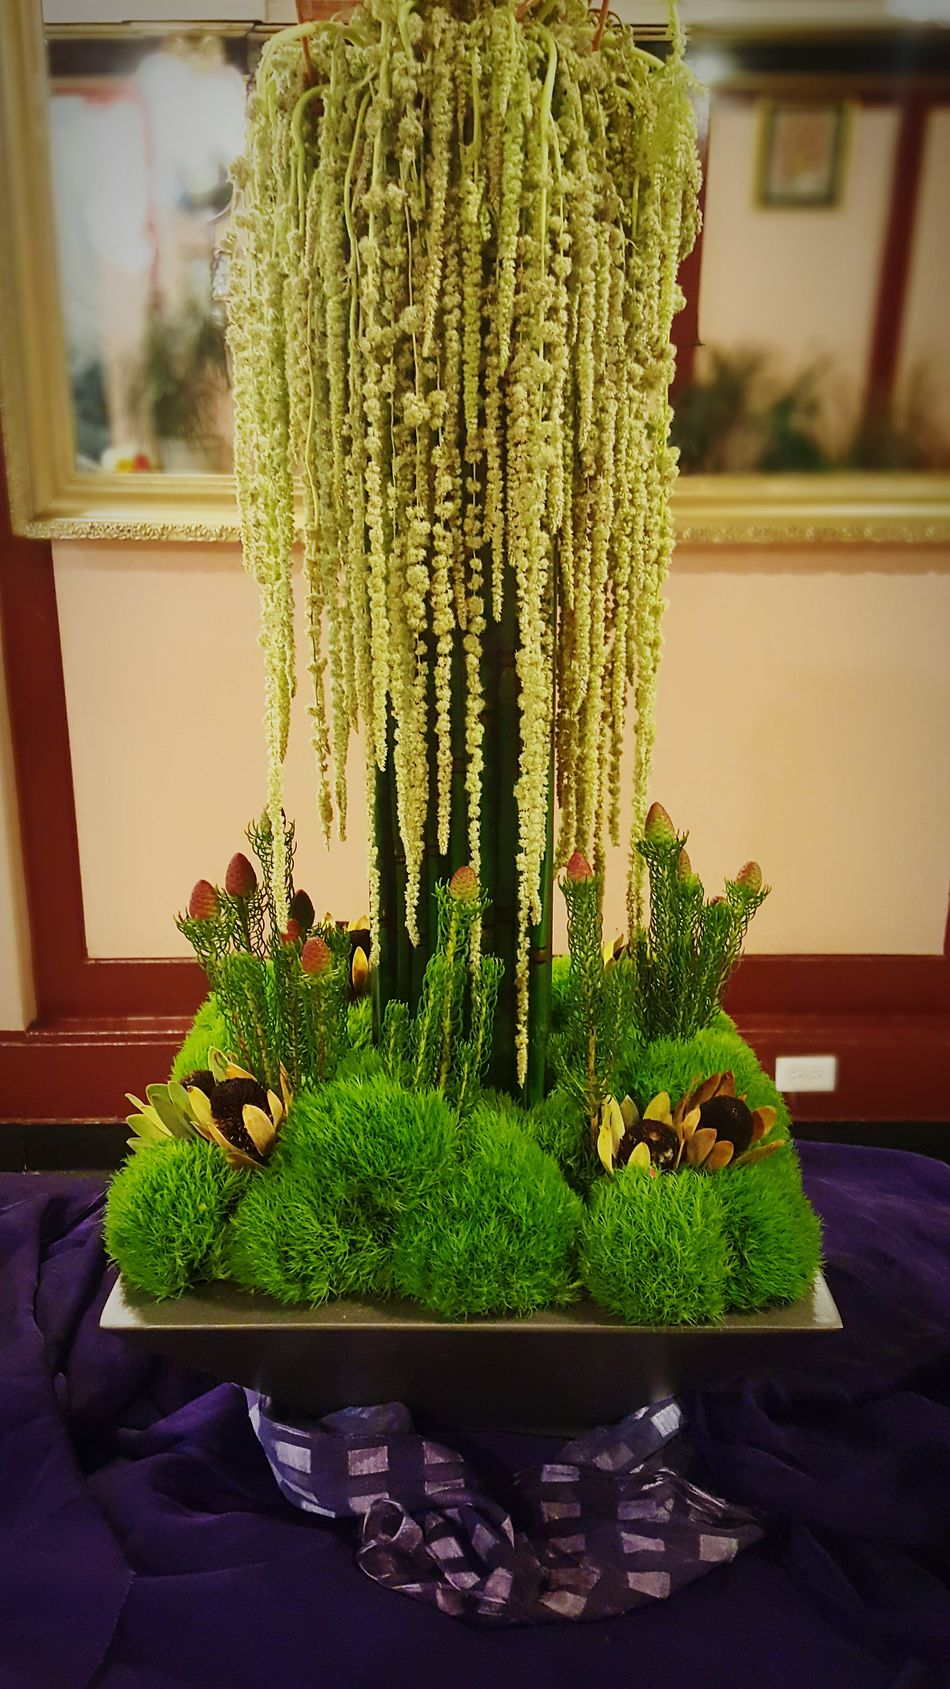 DeYoung Museum Floral Install Deyoung Deart modern Modern Floral Contemporary Floral Arrangements Grass Reeds Moss-covered Moss ba Moss Balls The piece I did for the DE Young De-Art Annual art and Flora show last week I'll let it finish in the lobby of my building. It was a fun piece, expense but fun.